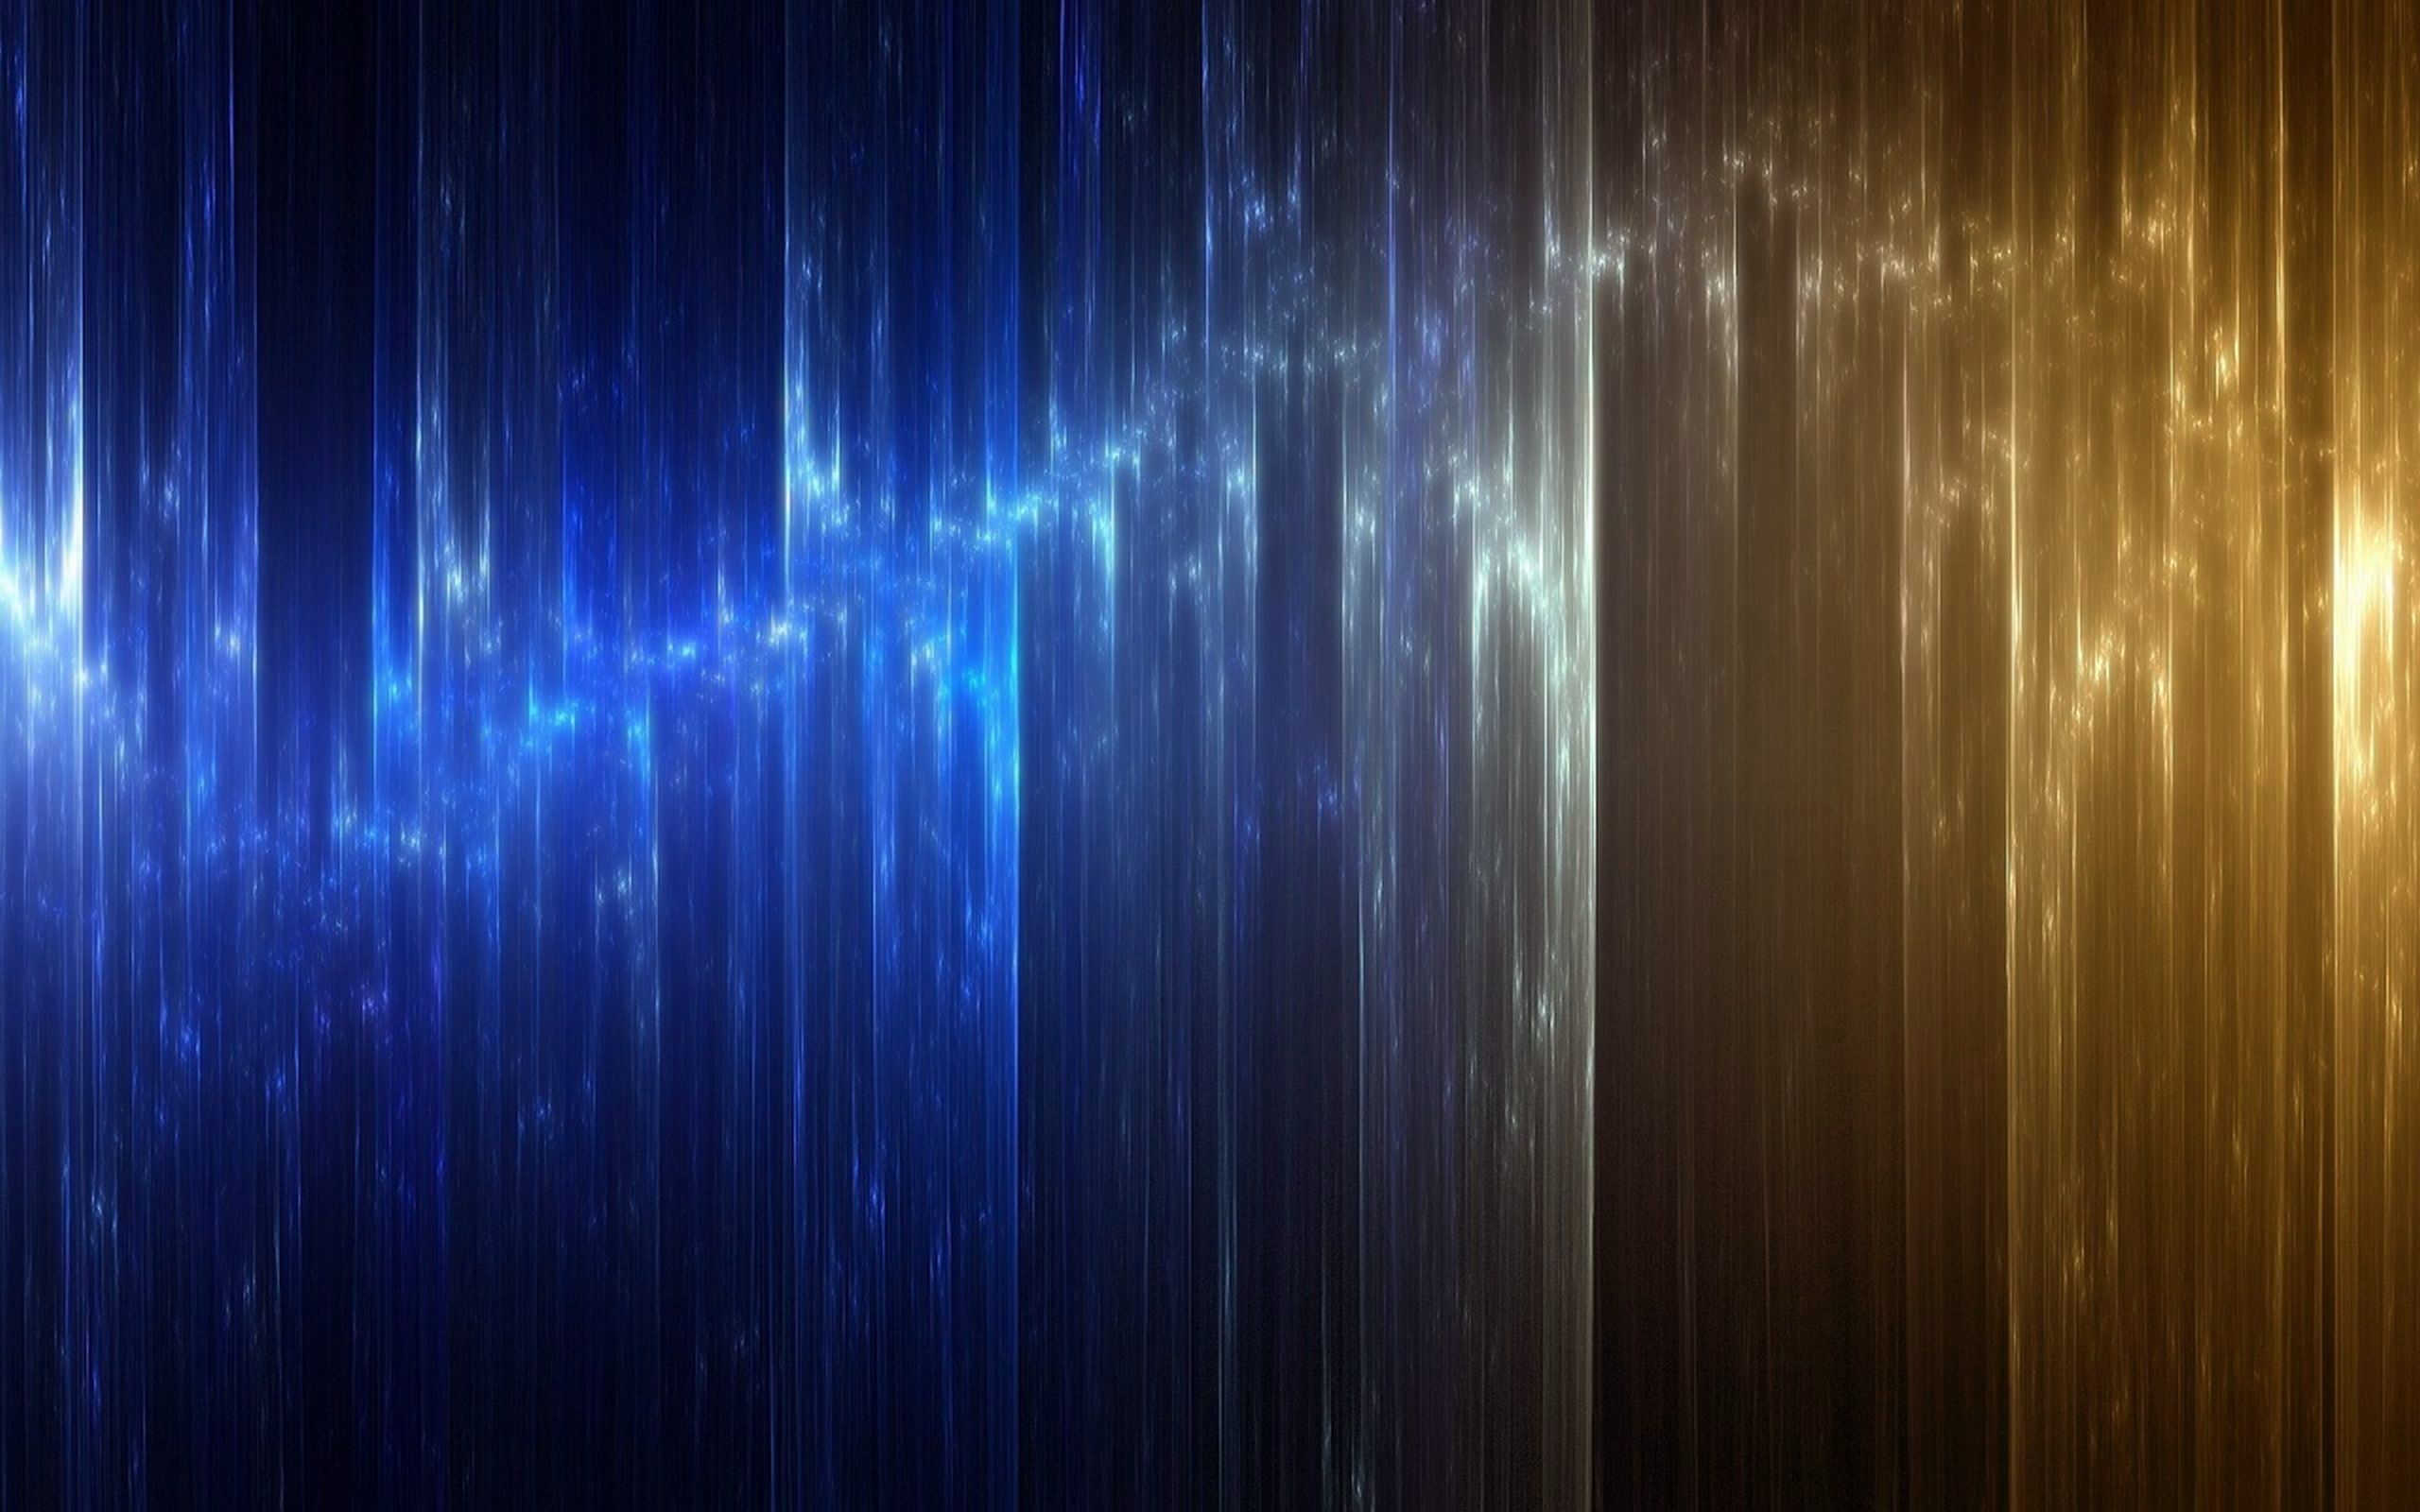 Blue And Gold Wallpaper